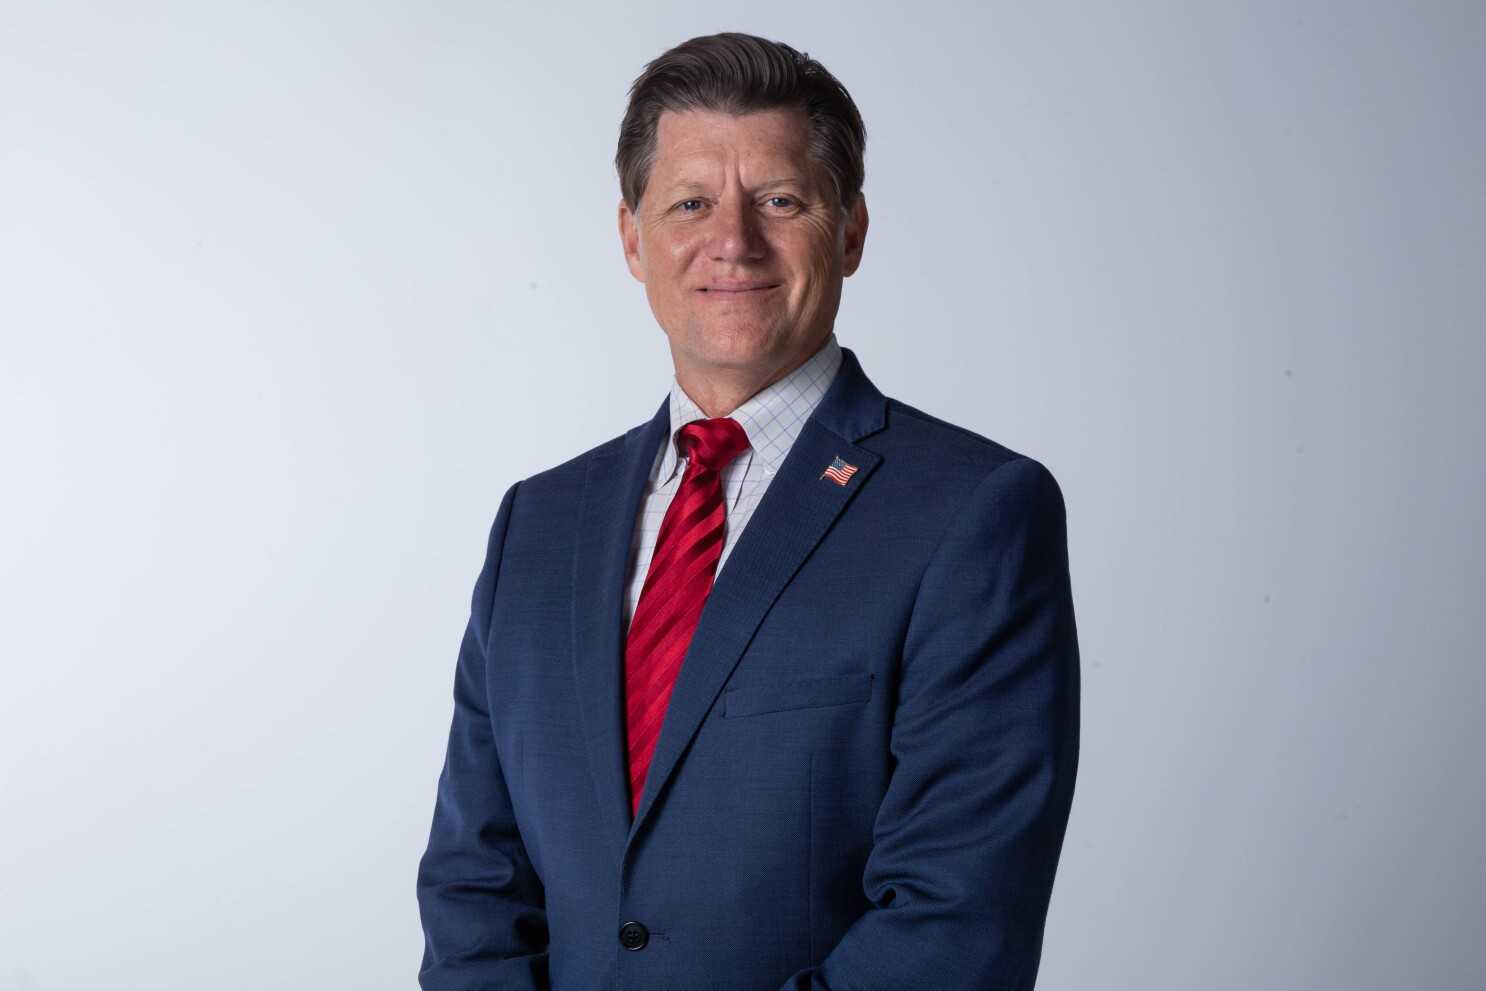 Meet Brian Jones, candidate for the 50th Congressional District